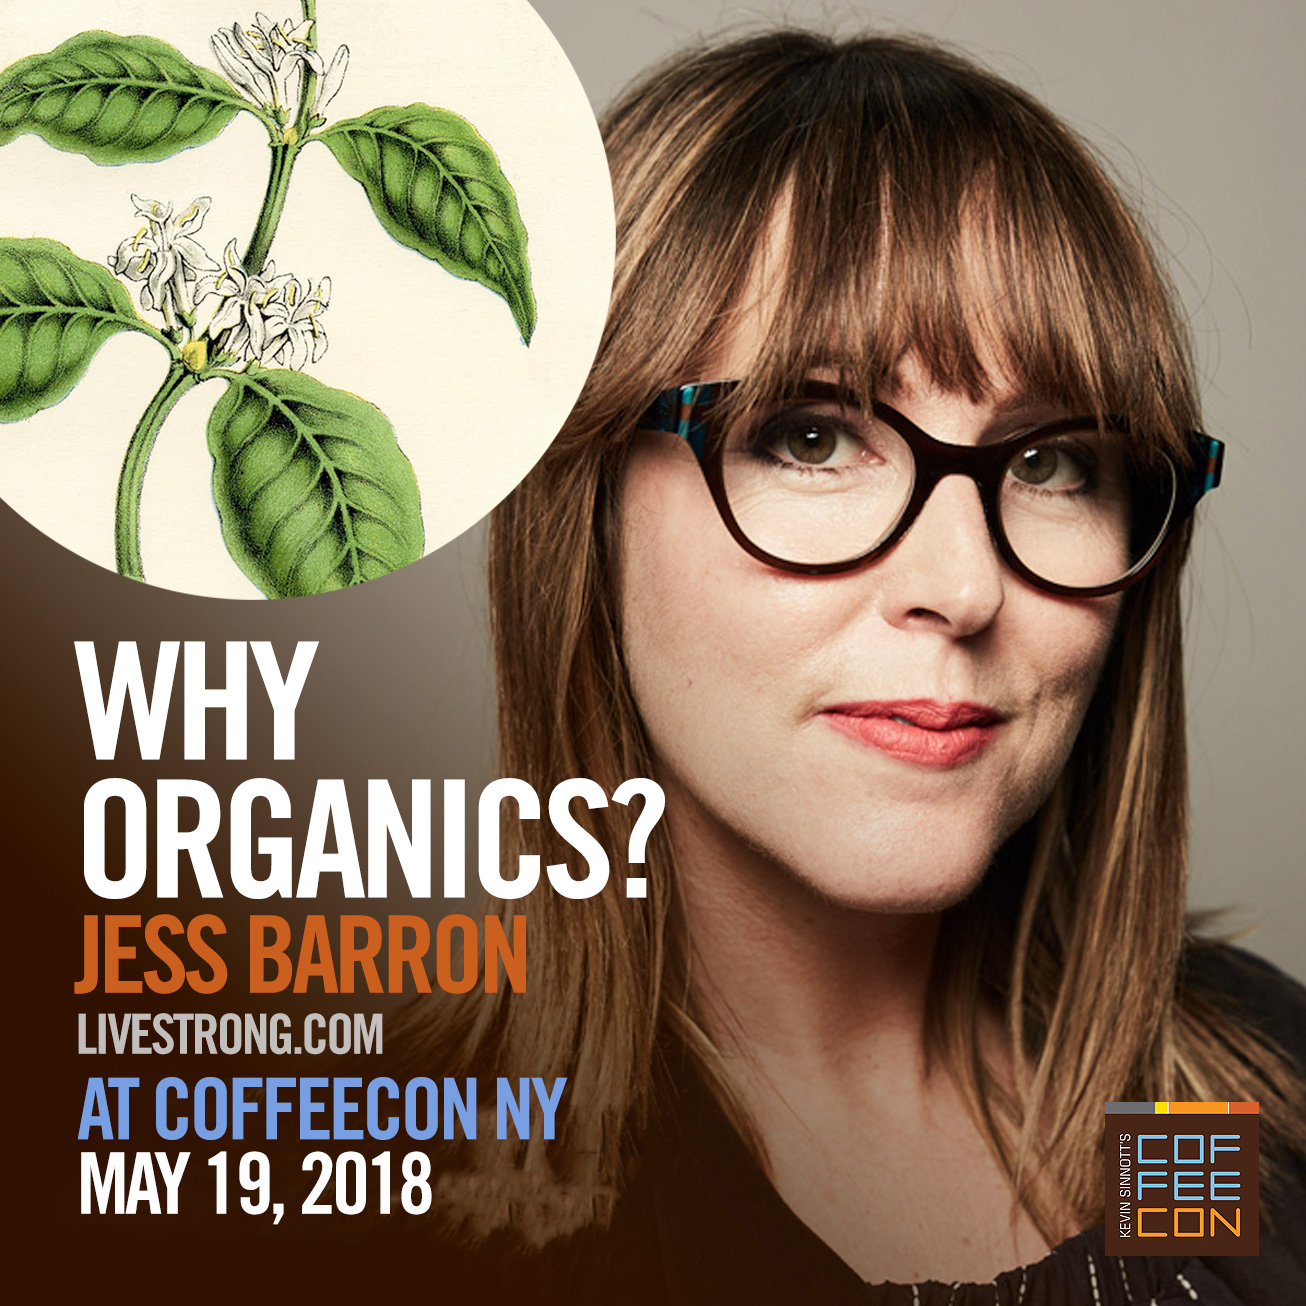 Why Organics with Jess Barron at CoffeeConNY